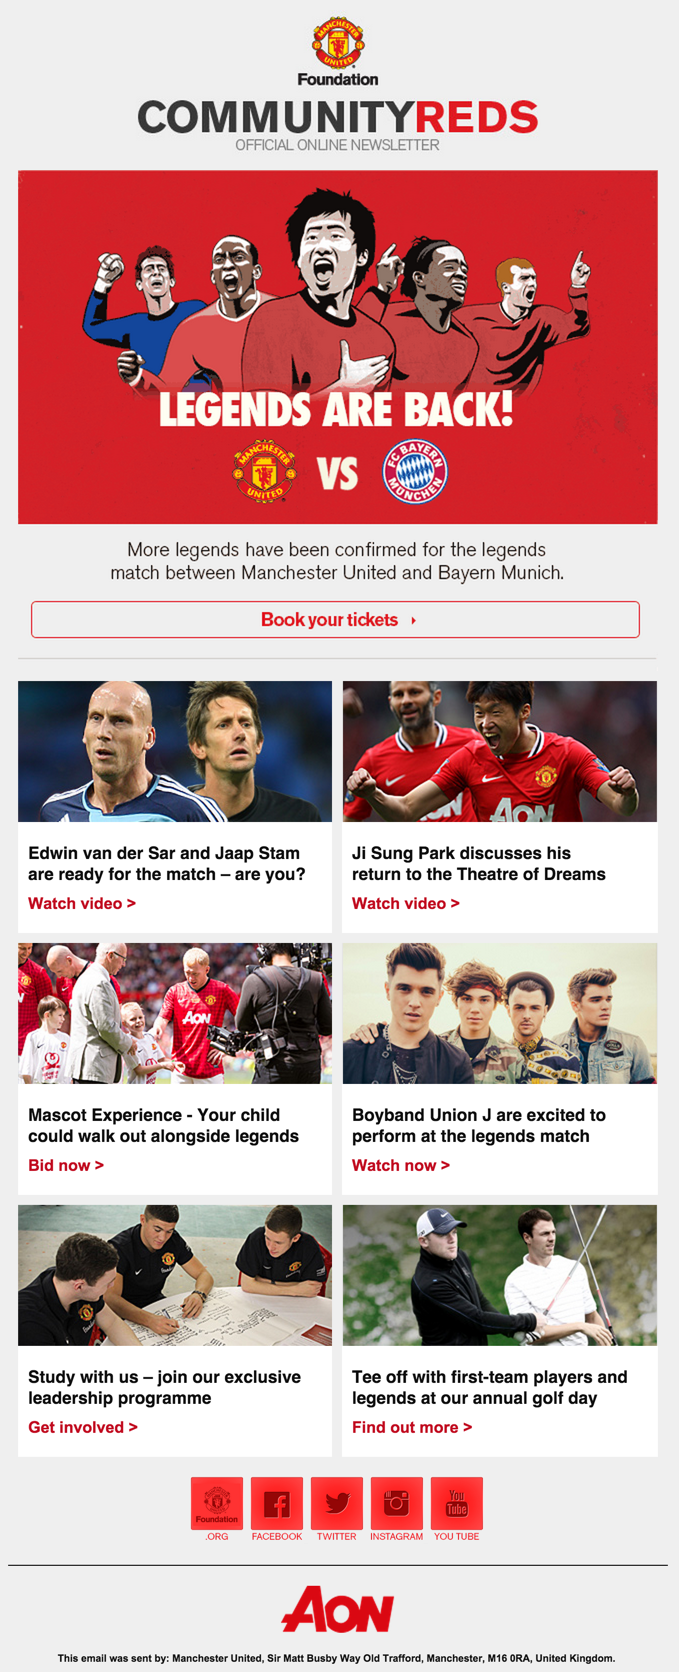 Email Design Inspiration From Manchester United Email Design Inspiration Email Design Email Layout